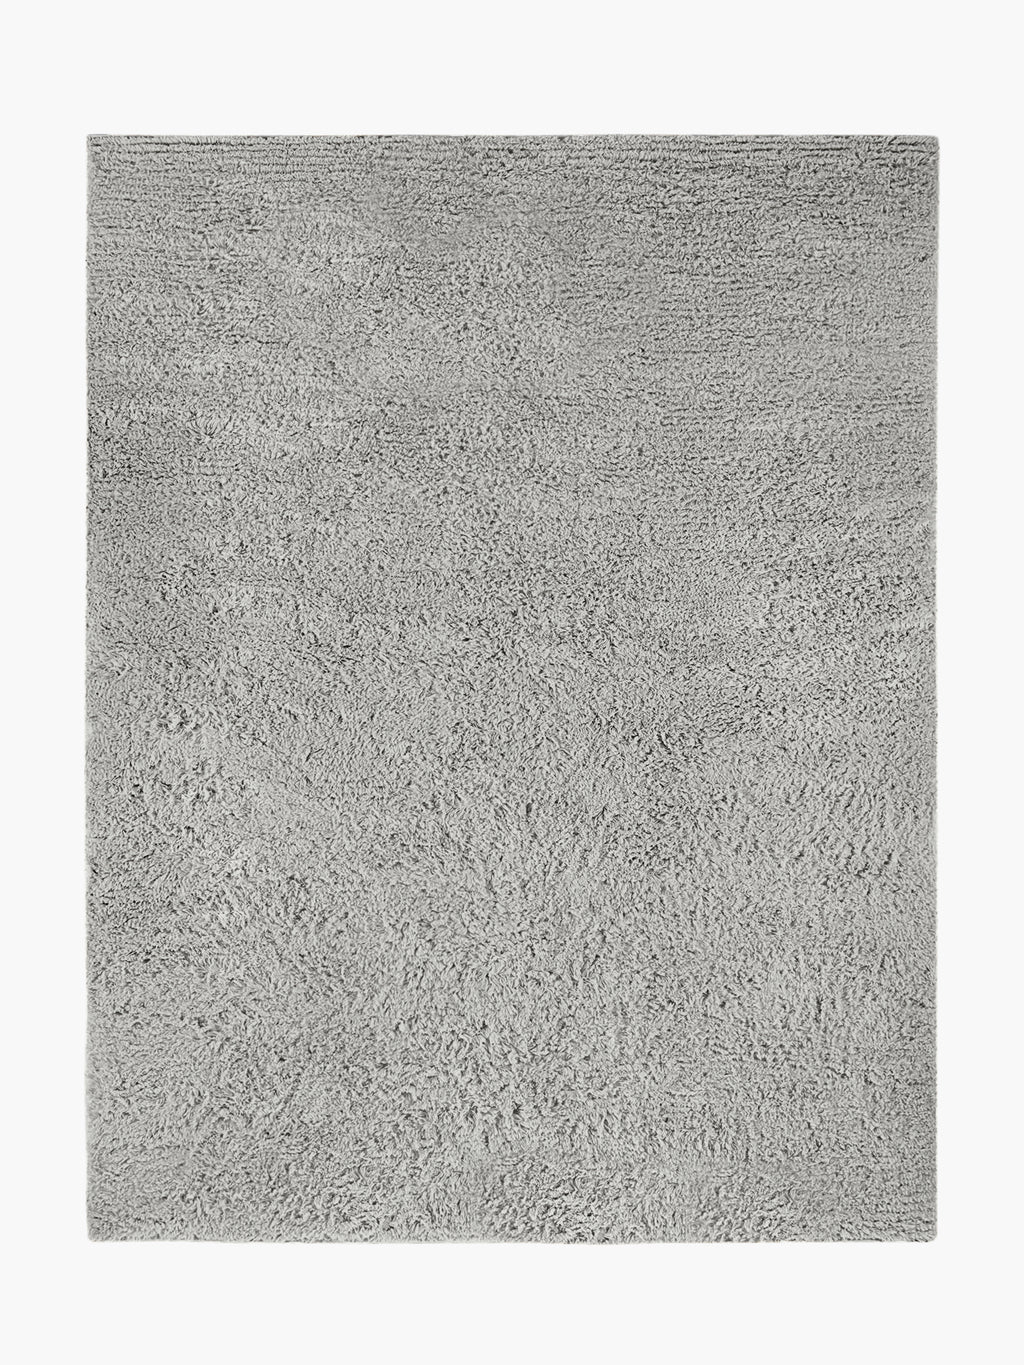 Performance Shag Rug - 2